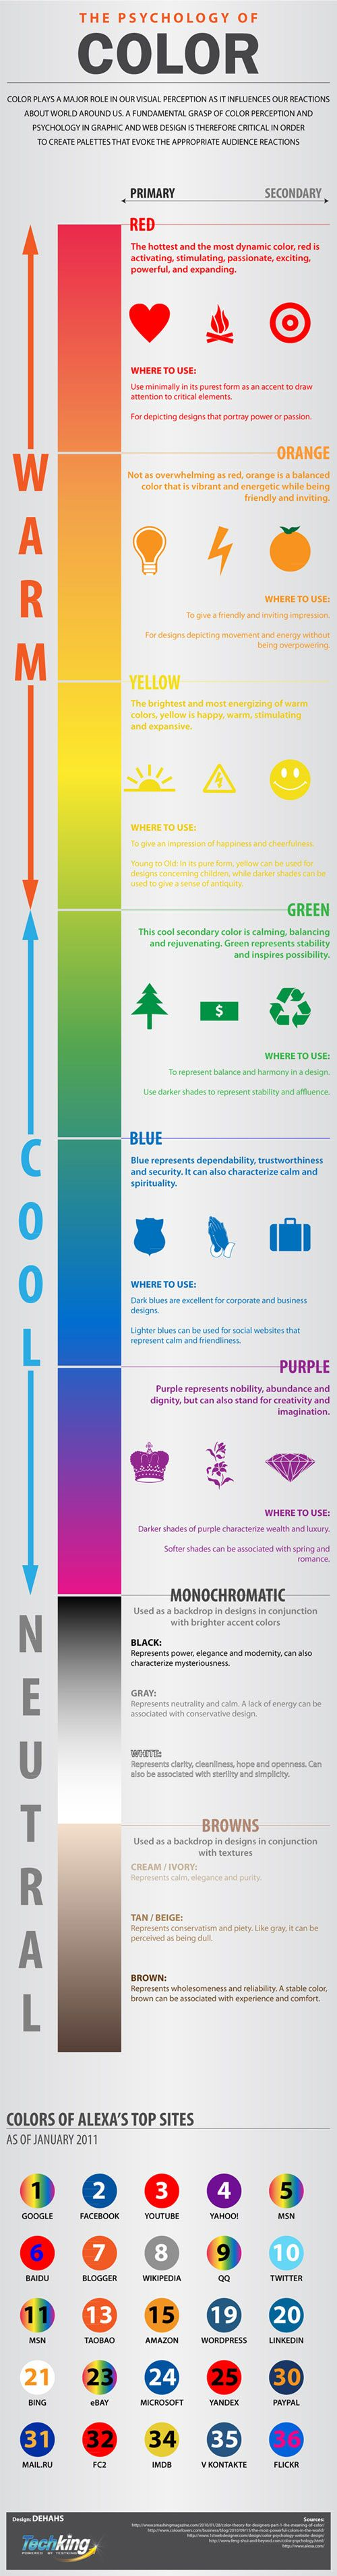 The Psychology of Color – Must See for Web Designers [Infographic]